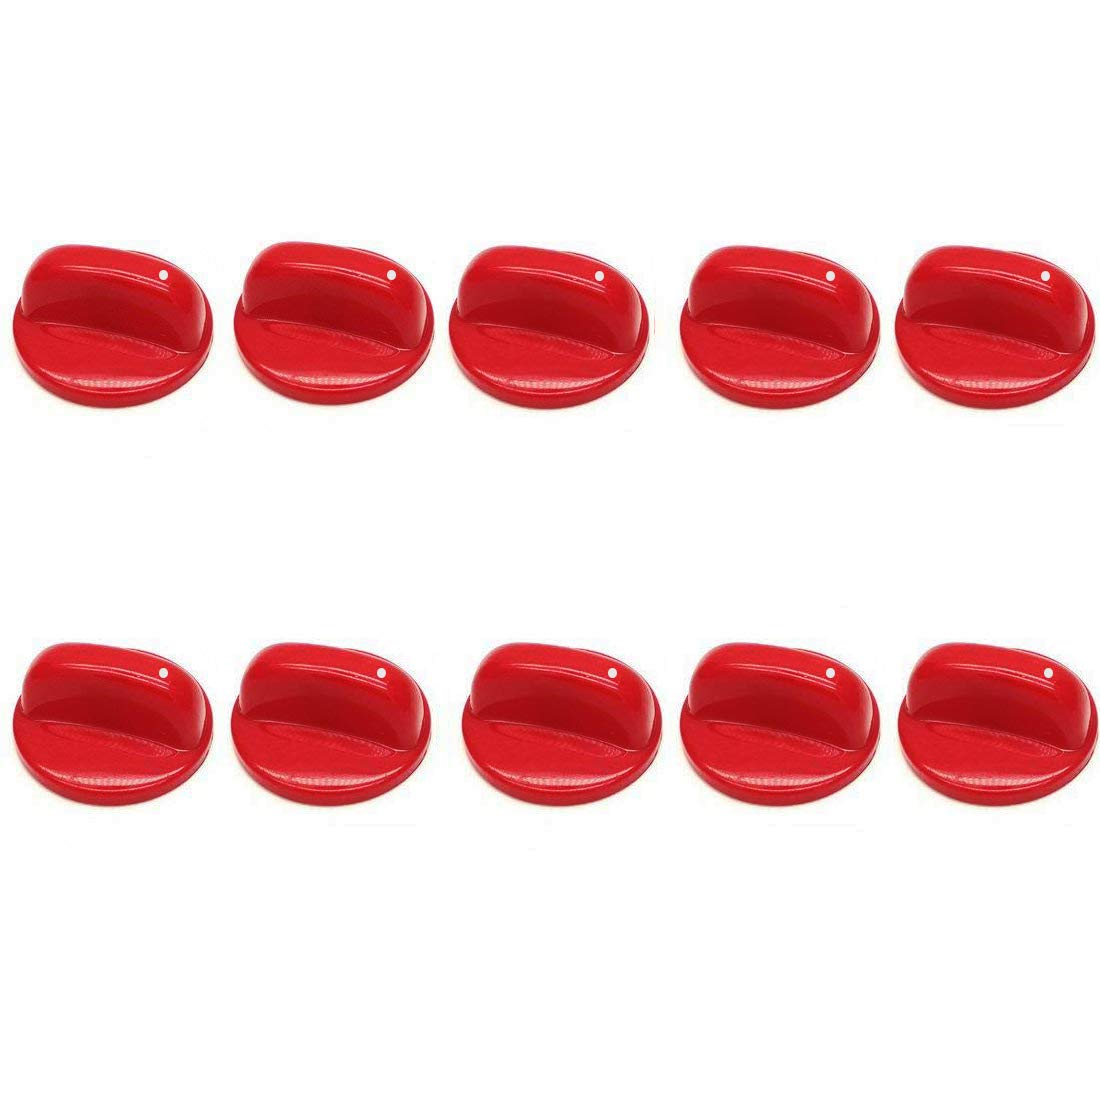 "LDEXIN 10pcs Kitchen Household Gas Stove Cooker Oven Control Rotary Switch Knob 50mm/1.97"" Dia"